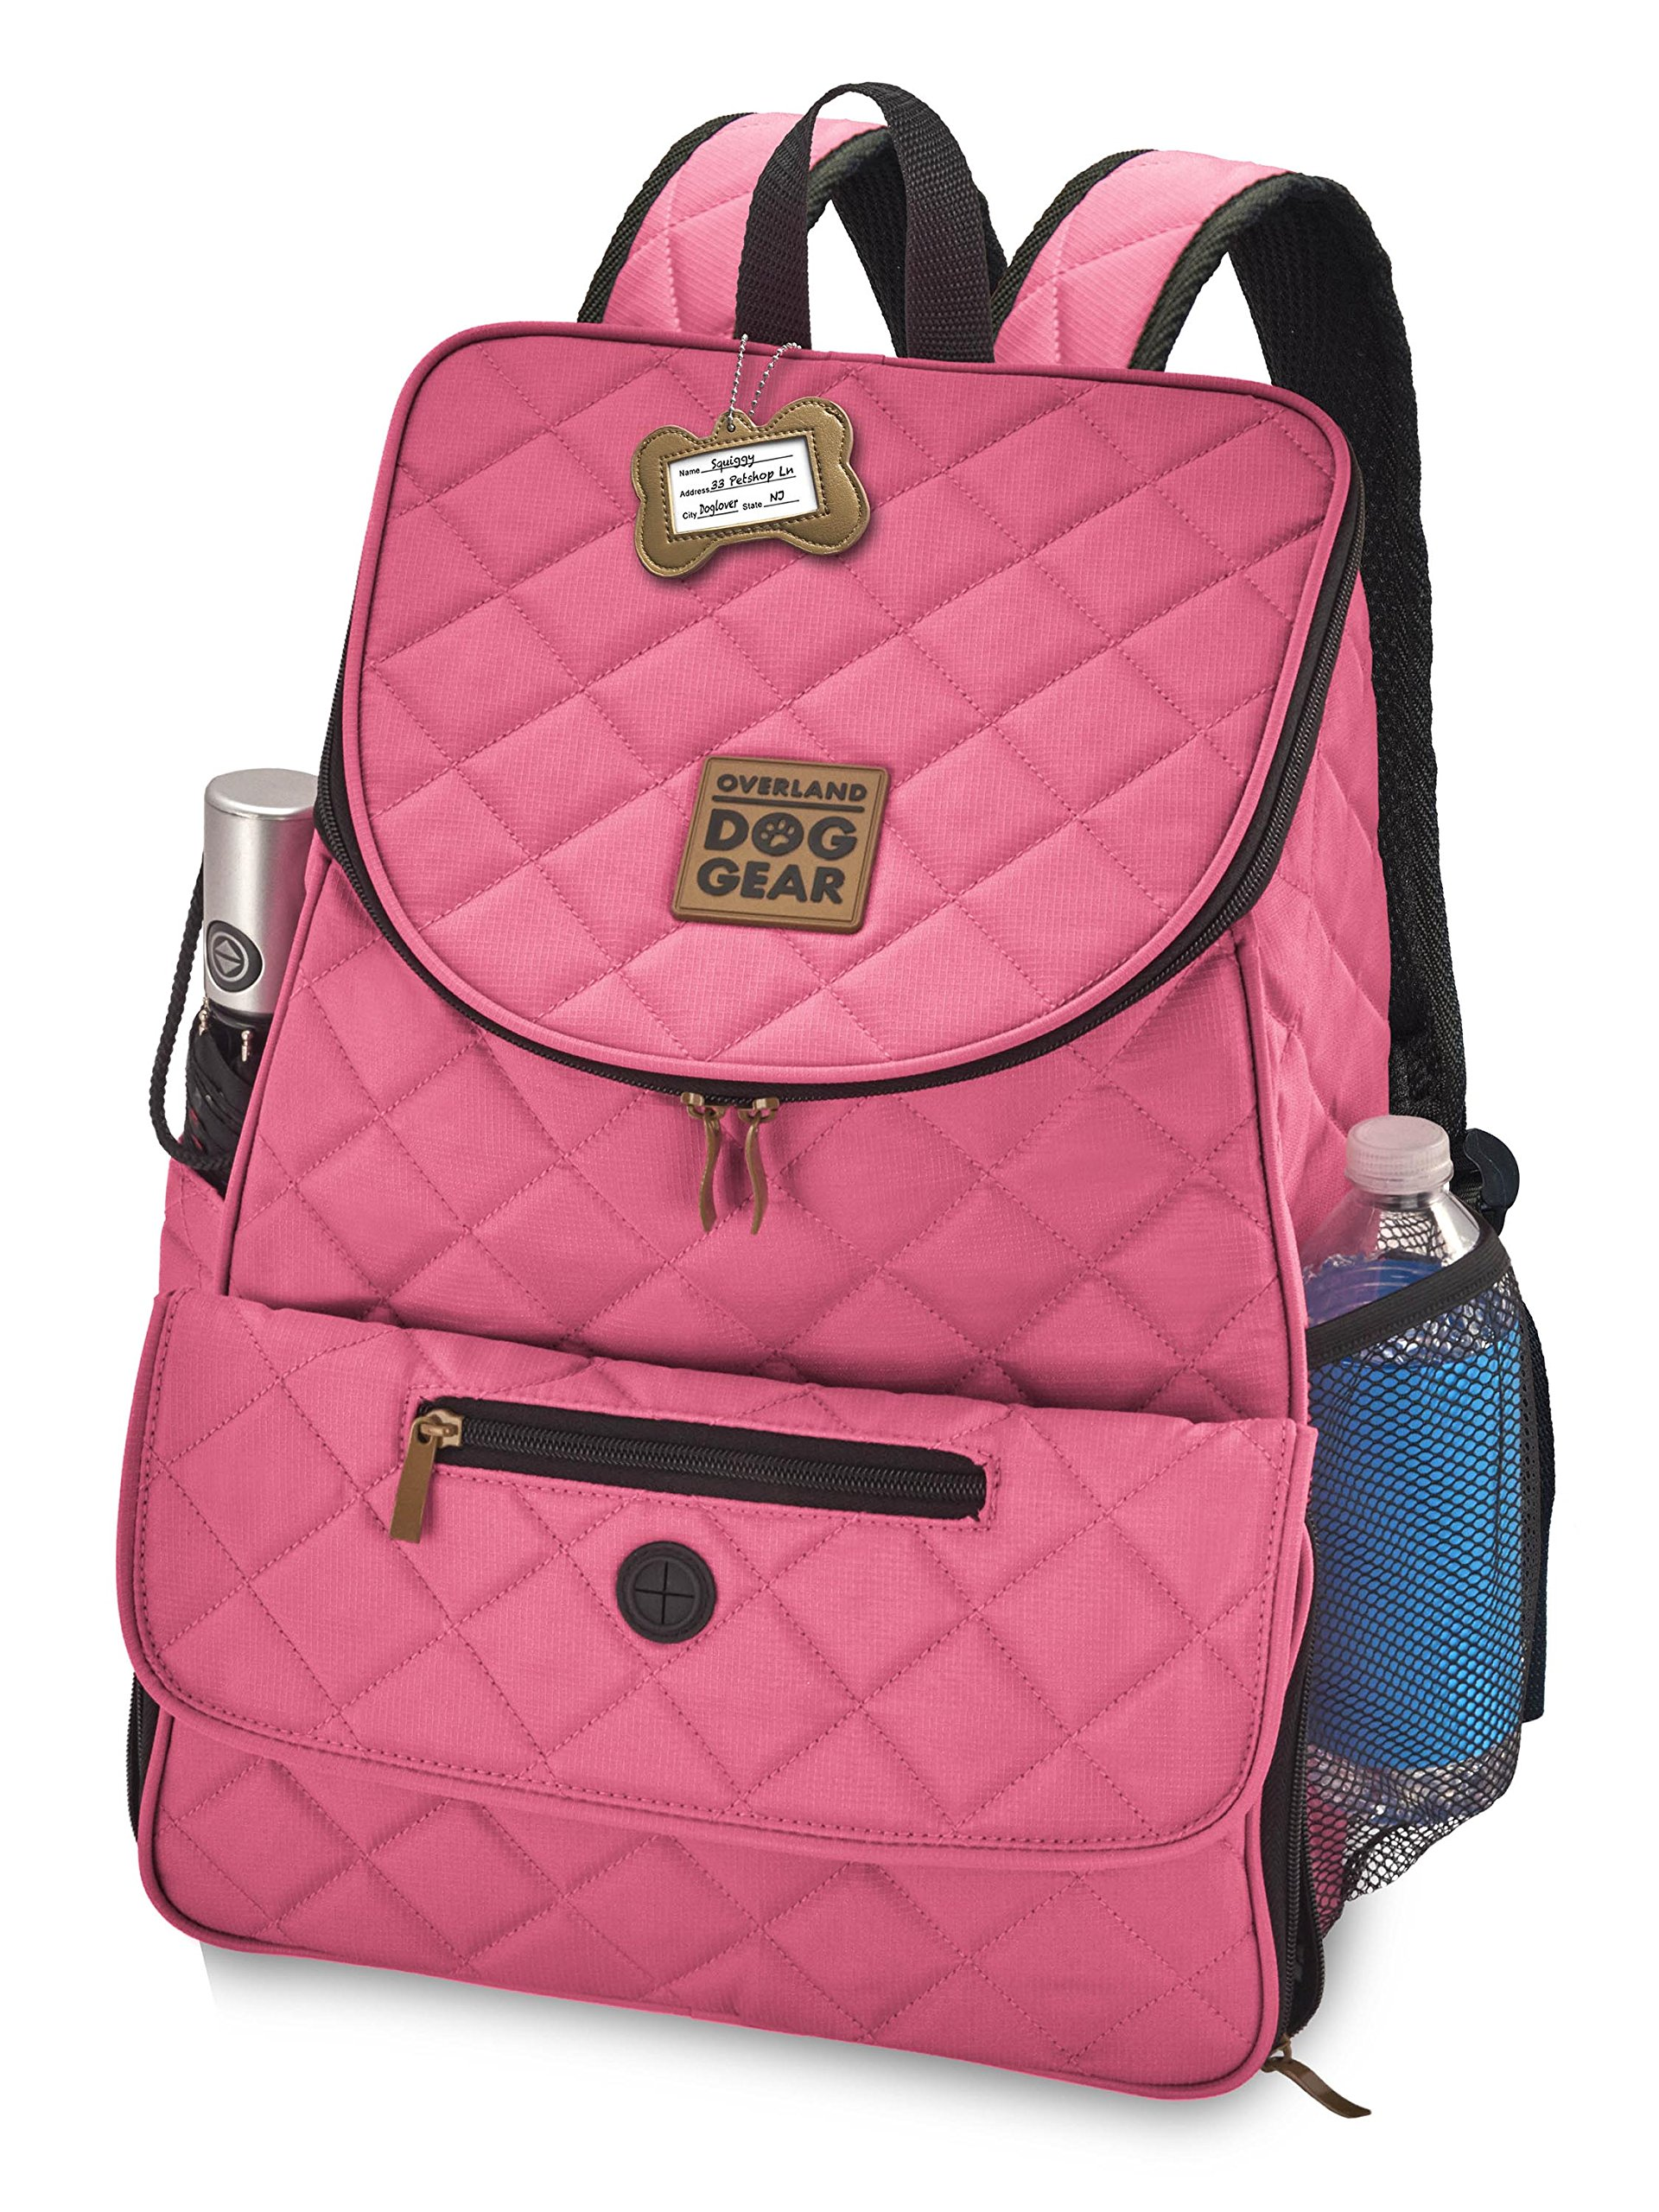 Dog Travel Bag - Deluxe Quilted Weekender Backpack - Includes Lined Food Carriers and Collapsible Bowls (Pink) by Overland Dog Gear